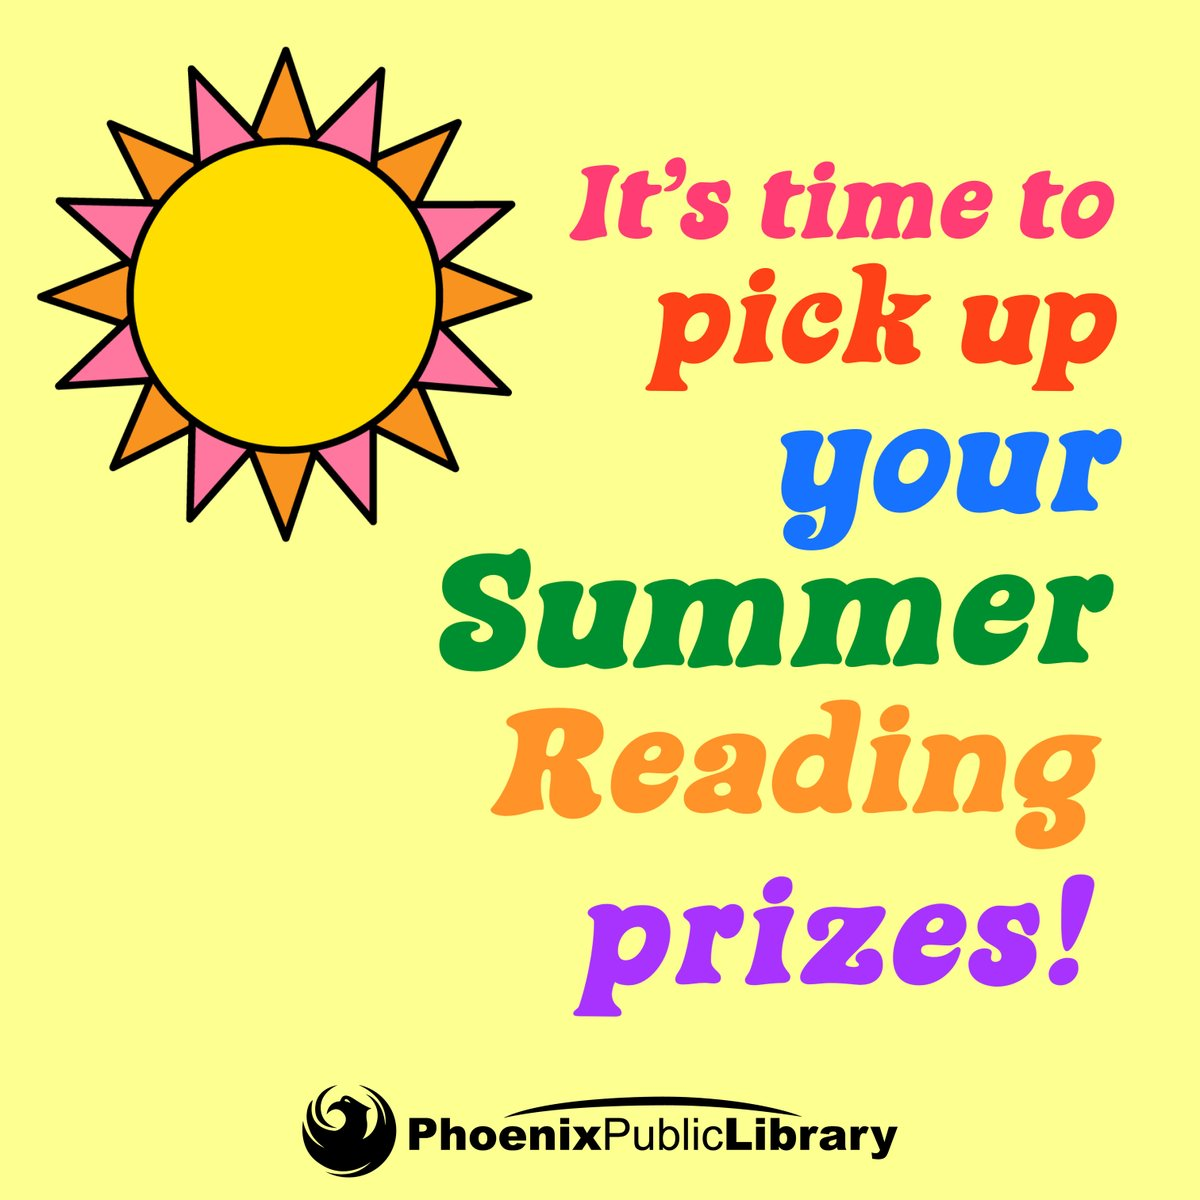 REMINDER: If you finished, then get thee to your chosen pickup branch during curbside hrs & claim your prizes by 9/30! ☀️📚  For details:  Long live #summerreading! #justreadppl #imagineyourstory #phoenixpubliclibrary #phx